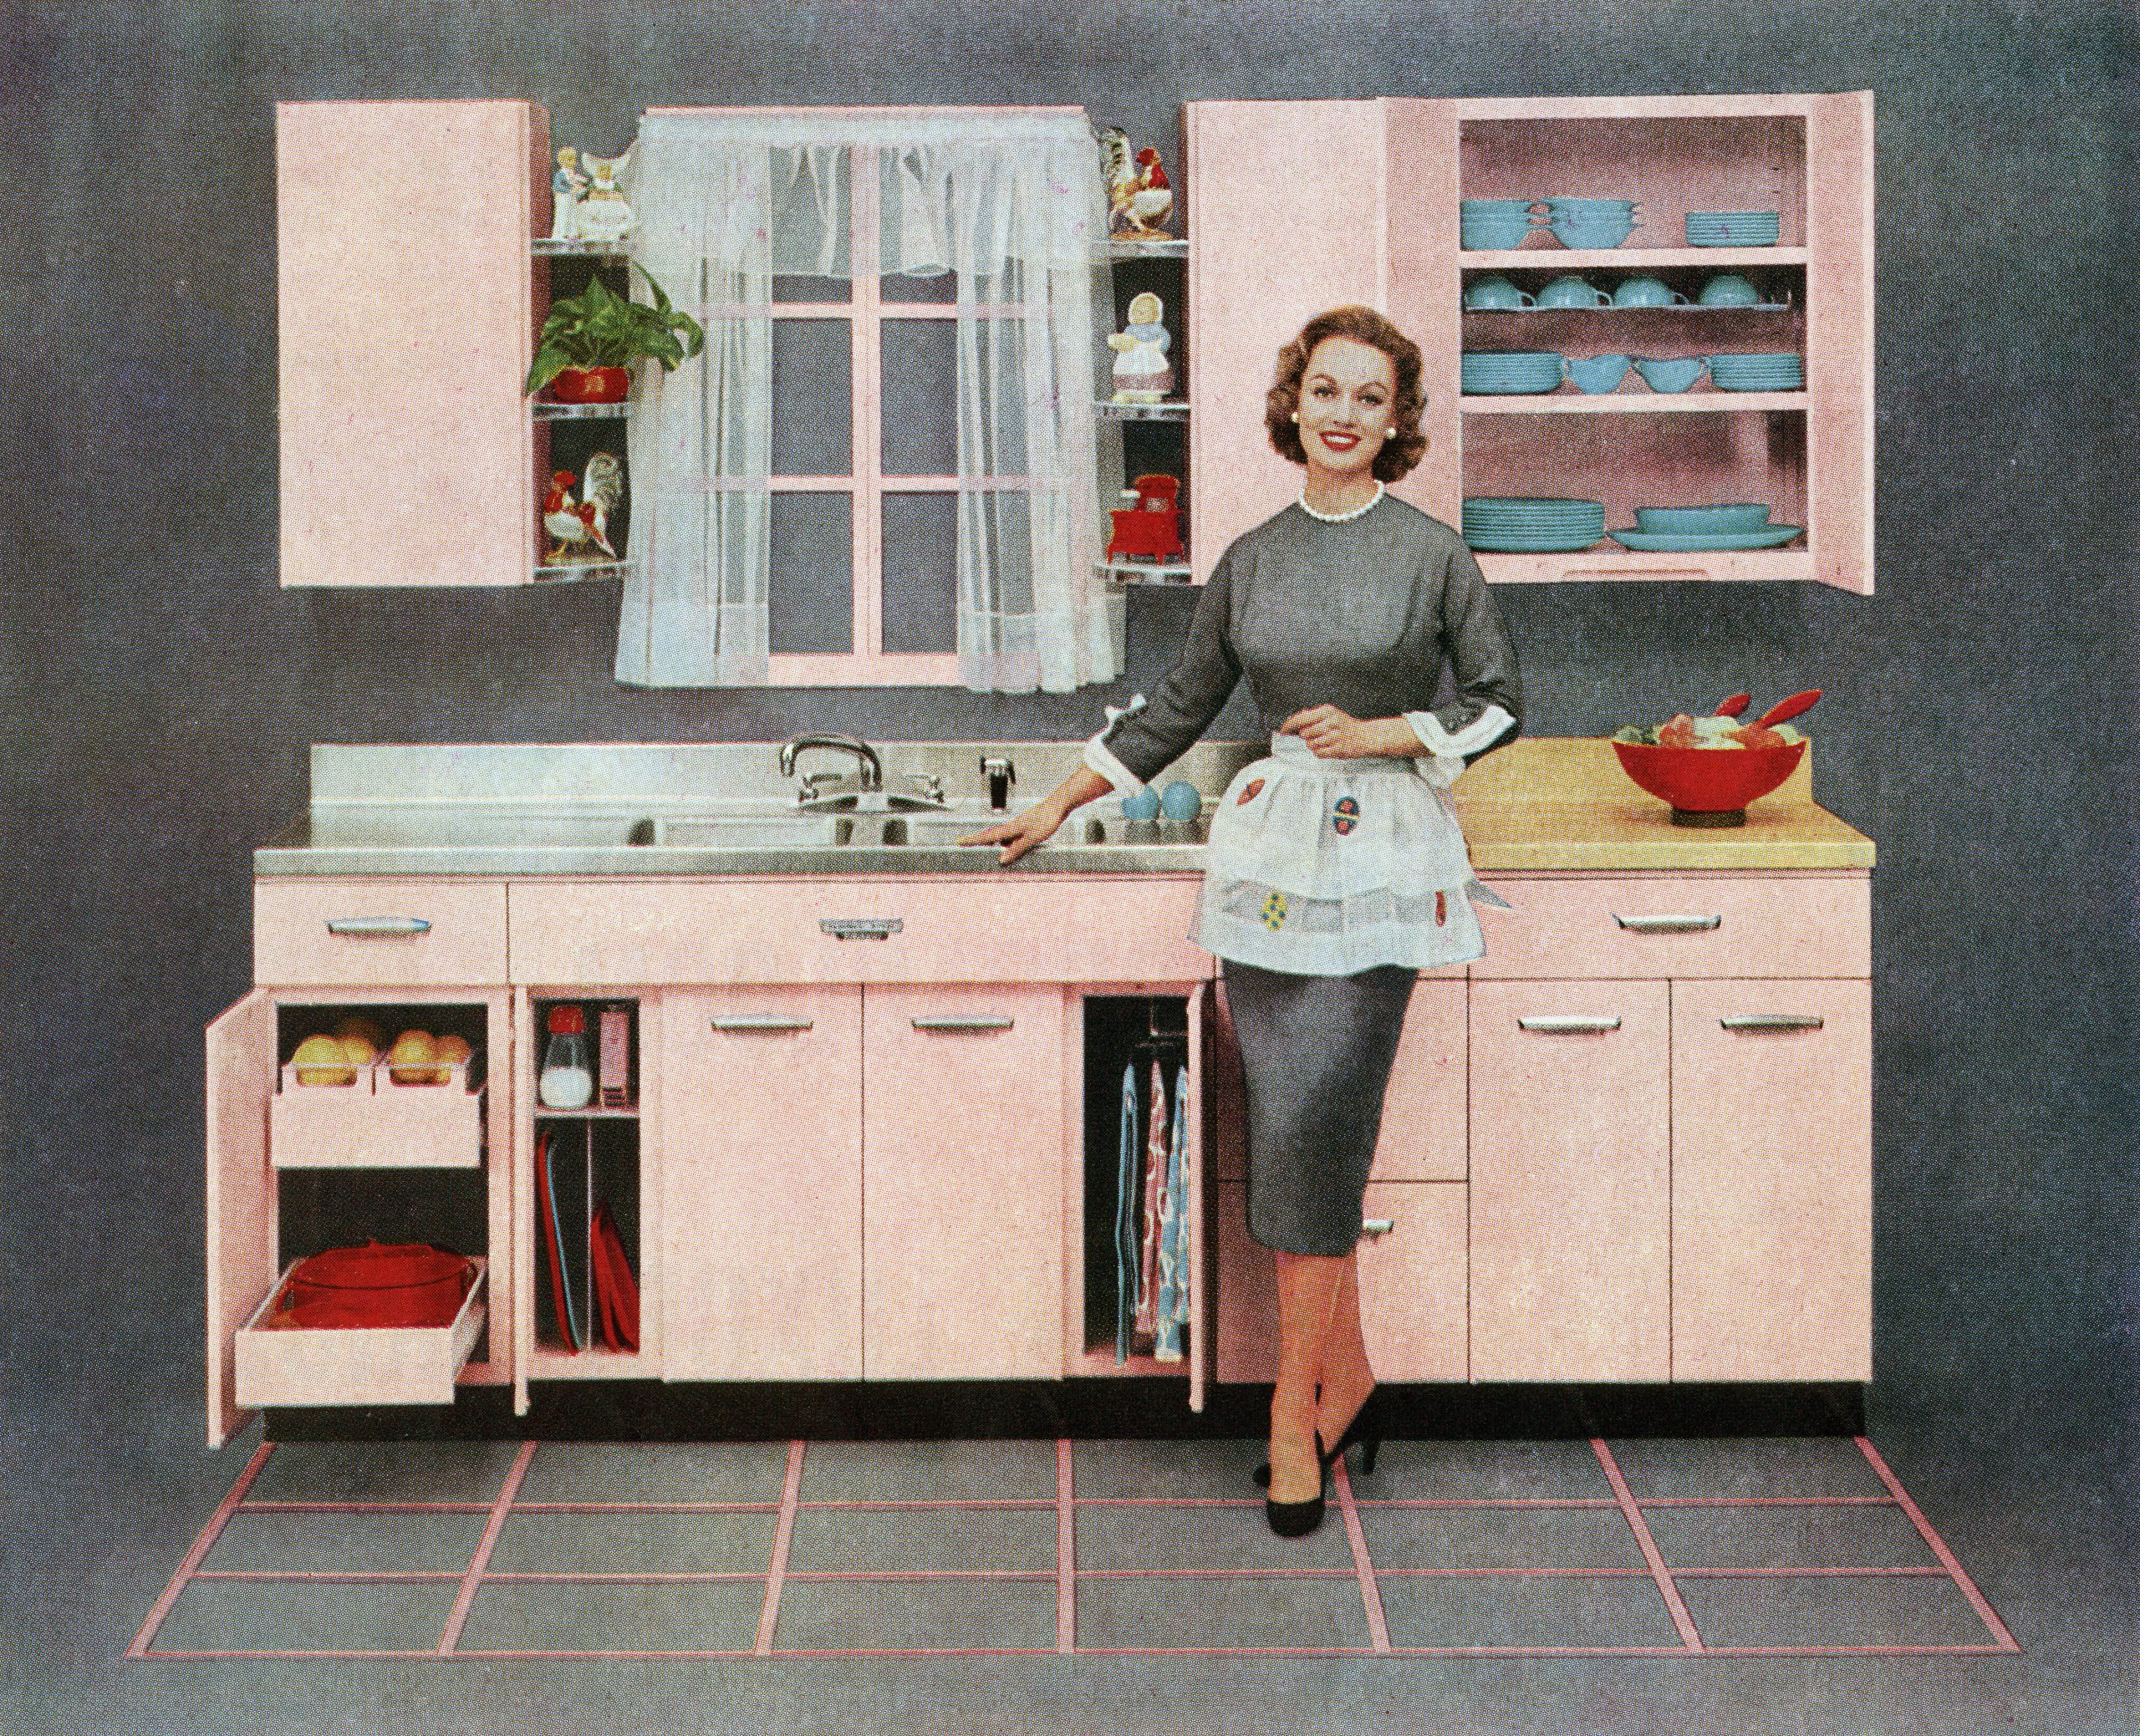 housewife standing in the kitchen